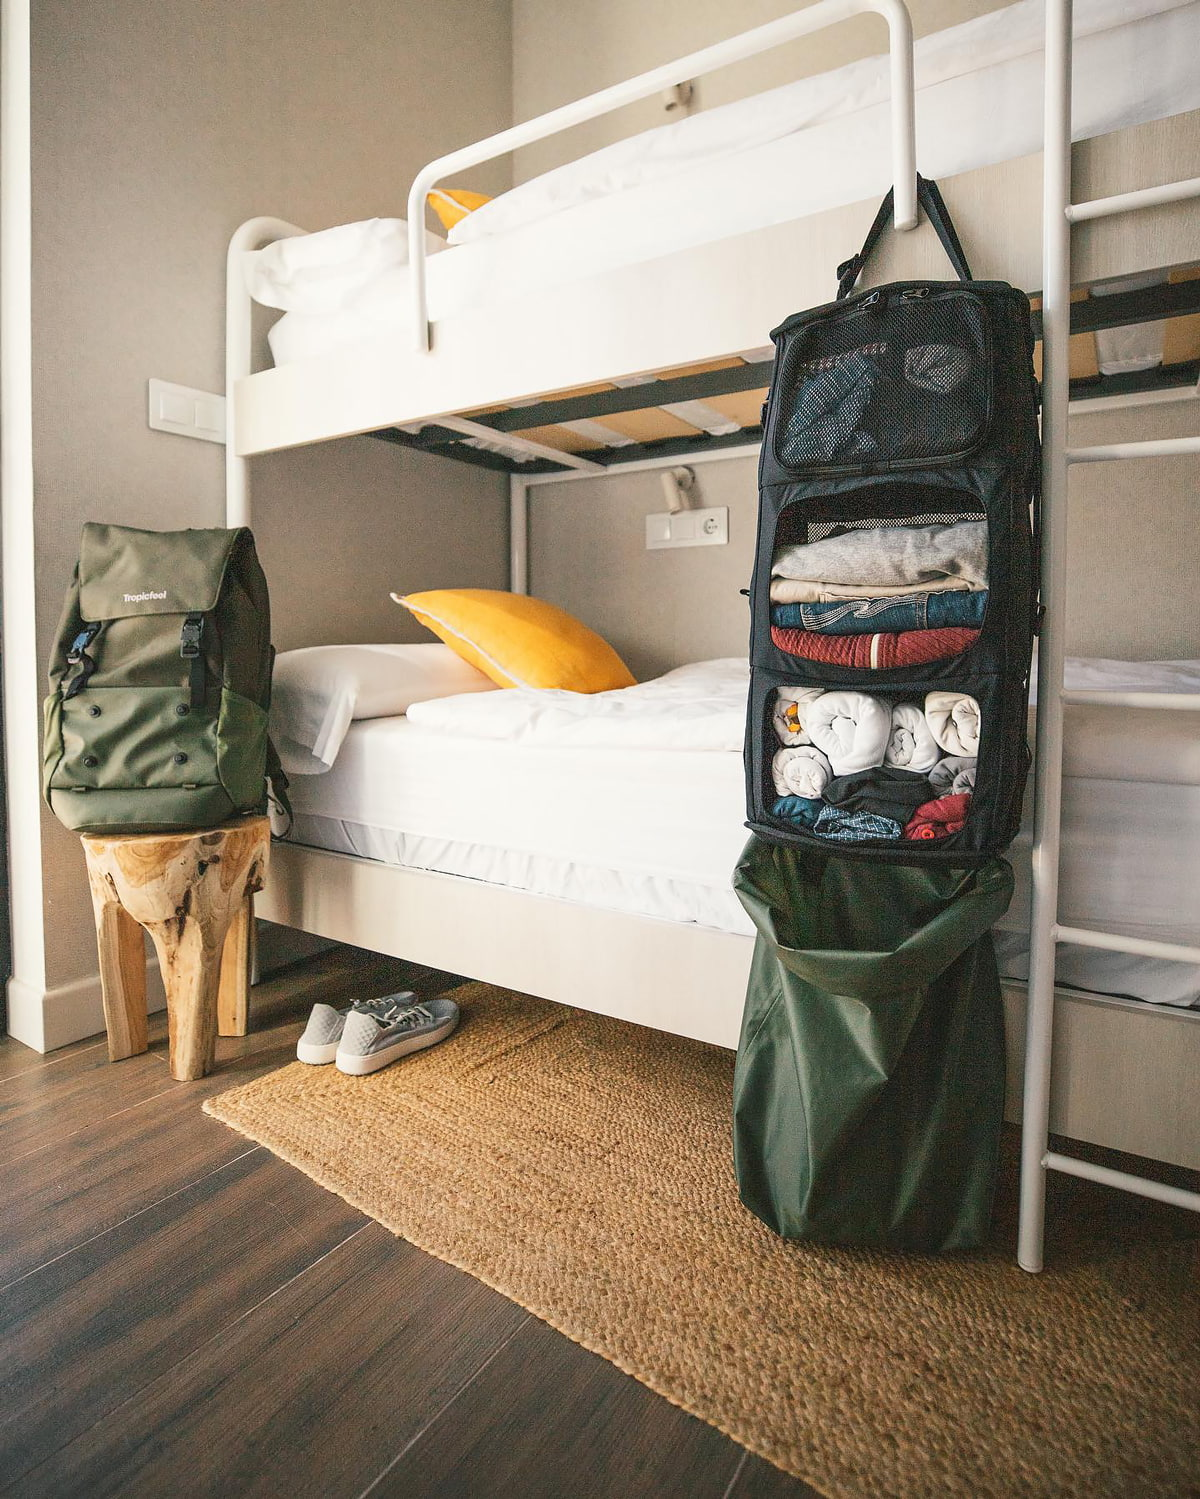 Travel backpack with wardrobe